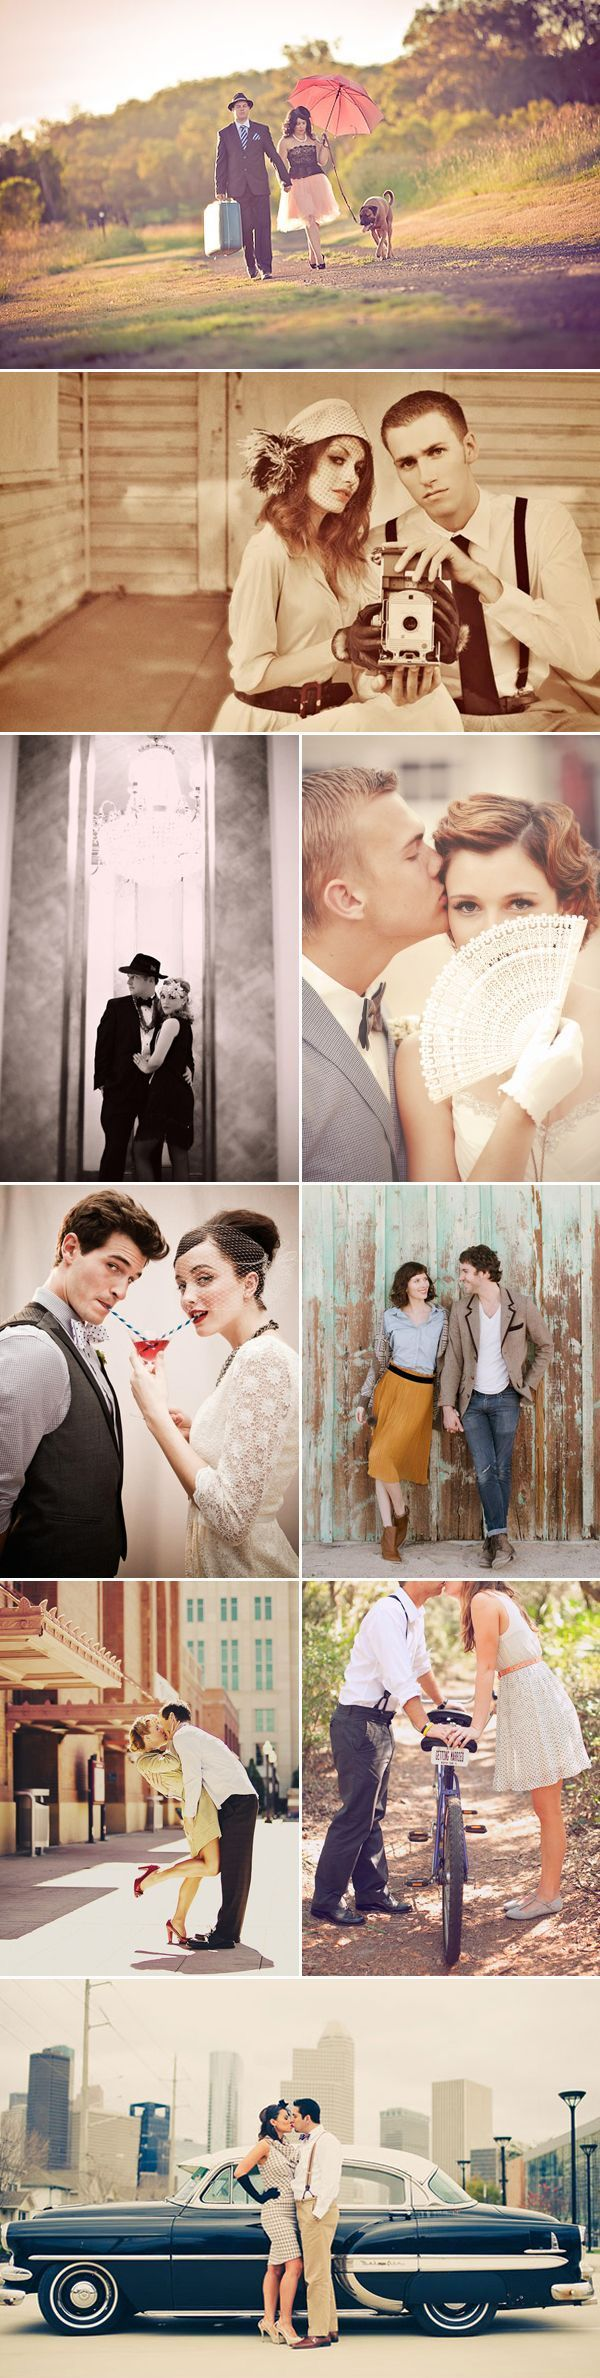 These ideas for vintage engagement photos are too cute.